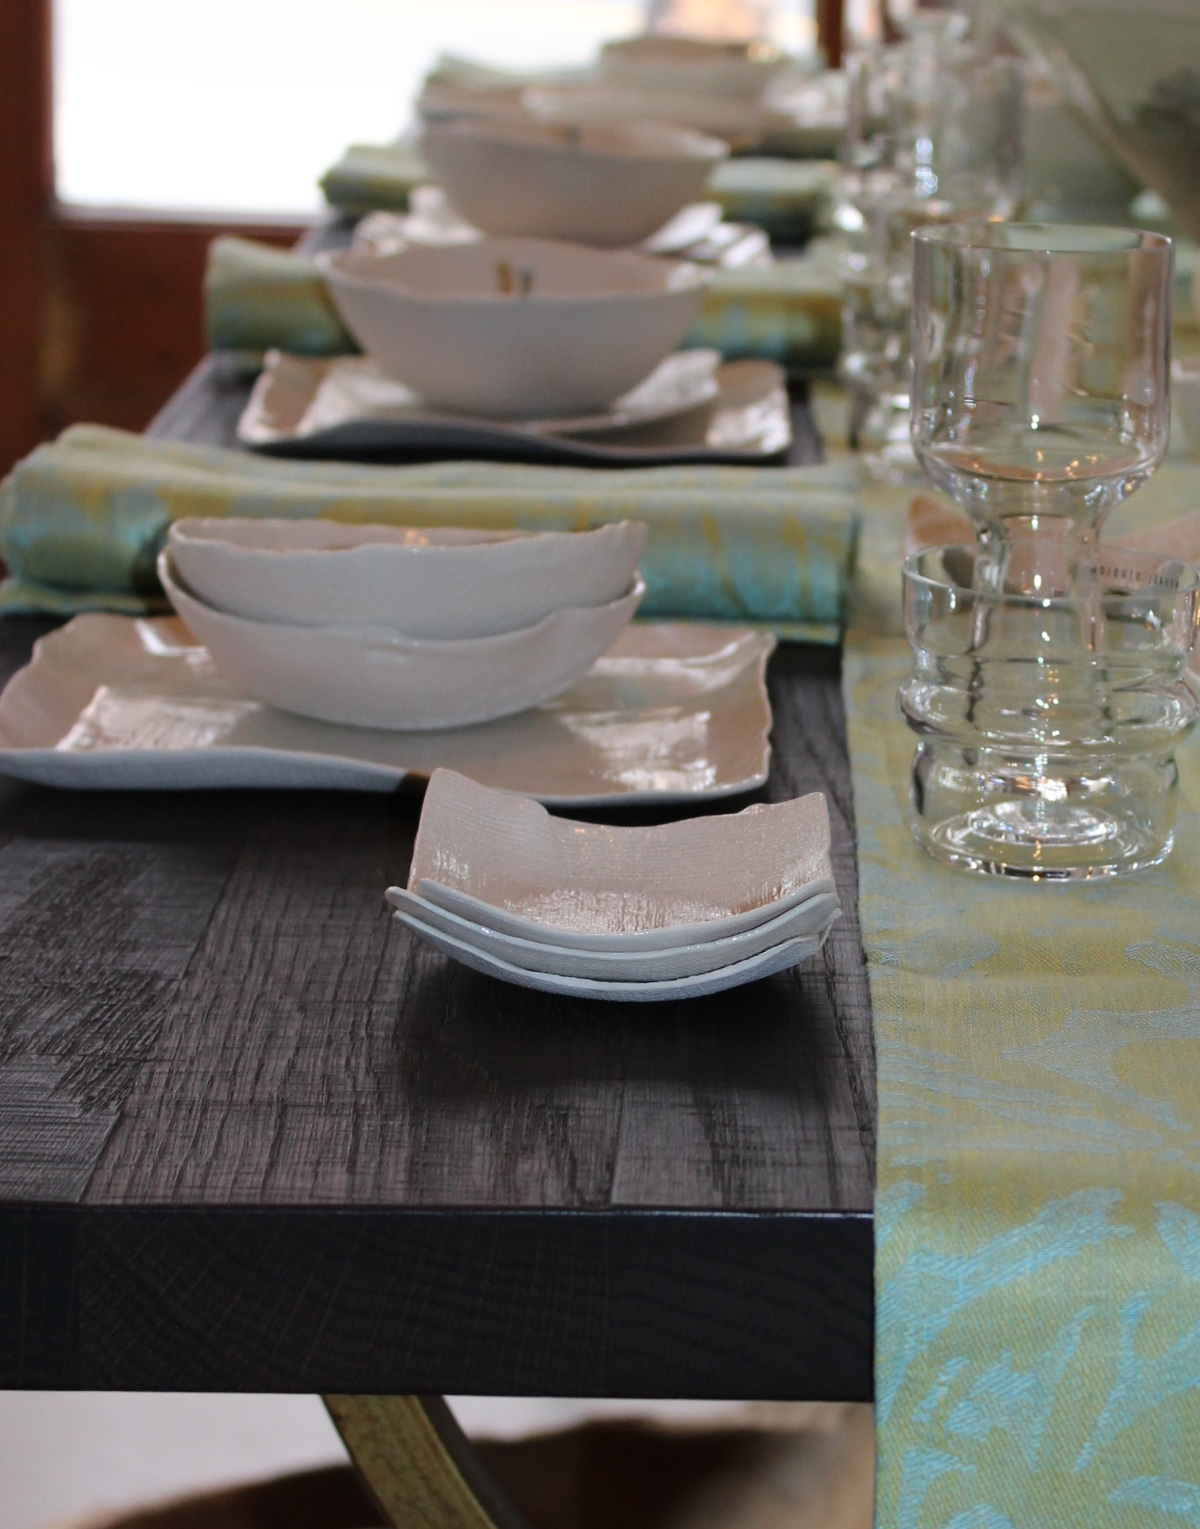 1st of spring 2015 - breezy + sunny linen runner, rich smoky table + textural setting...easing into spring